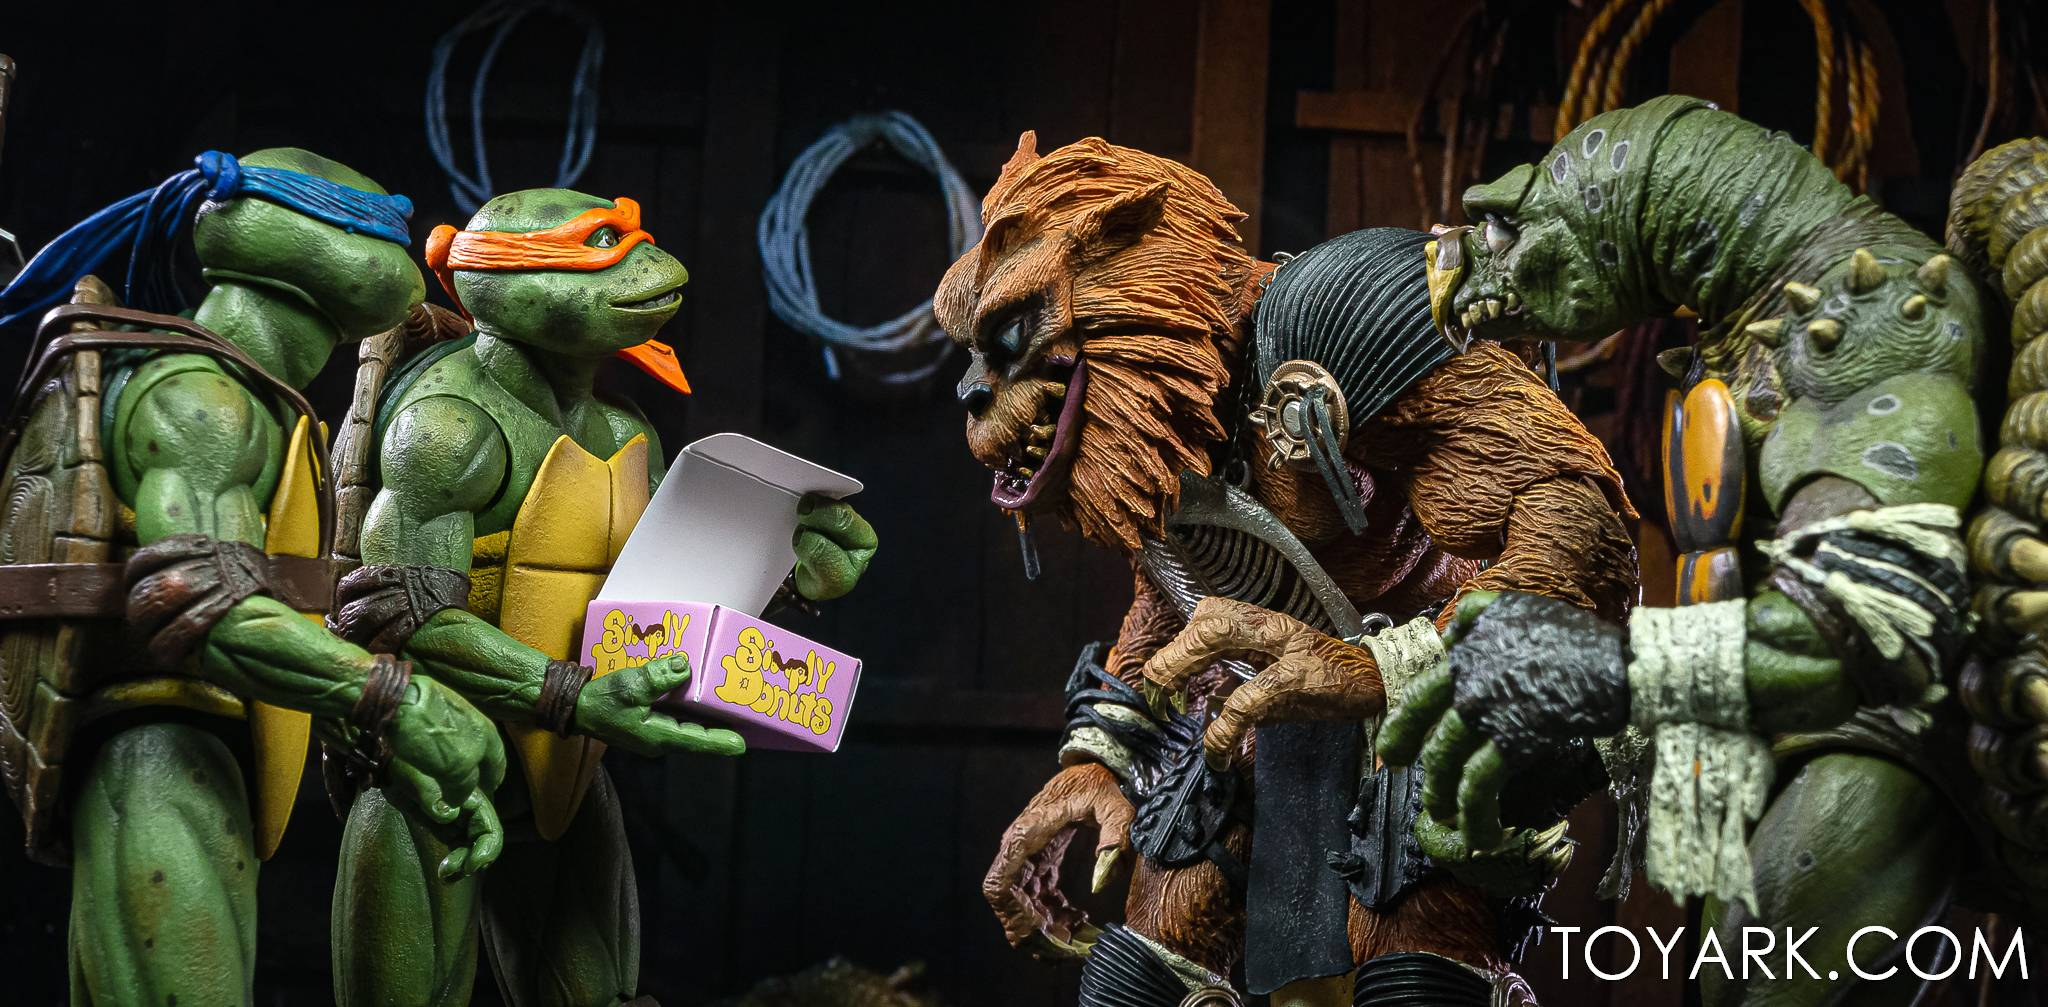 https://news.toyark.com/wp-content/uploads/sites/4/2021/03/NECA-Tokka-and-Rahzar-TMNT-II-035.jpg